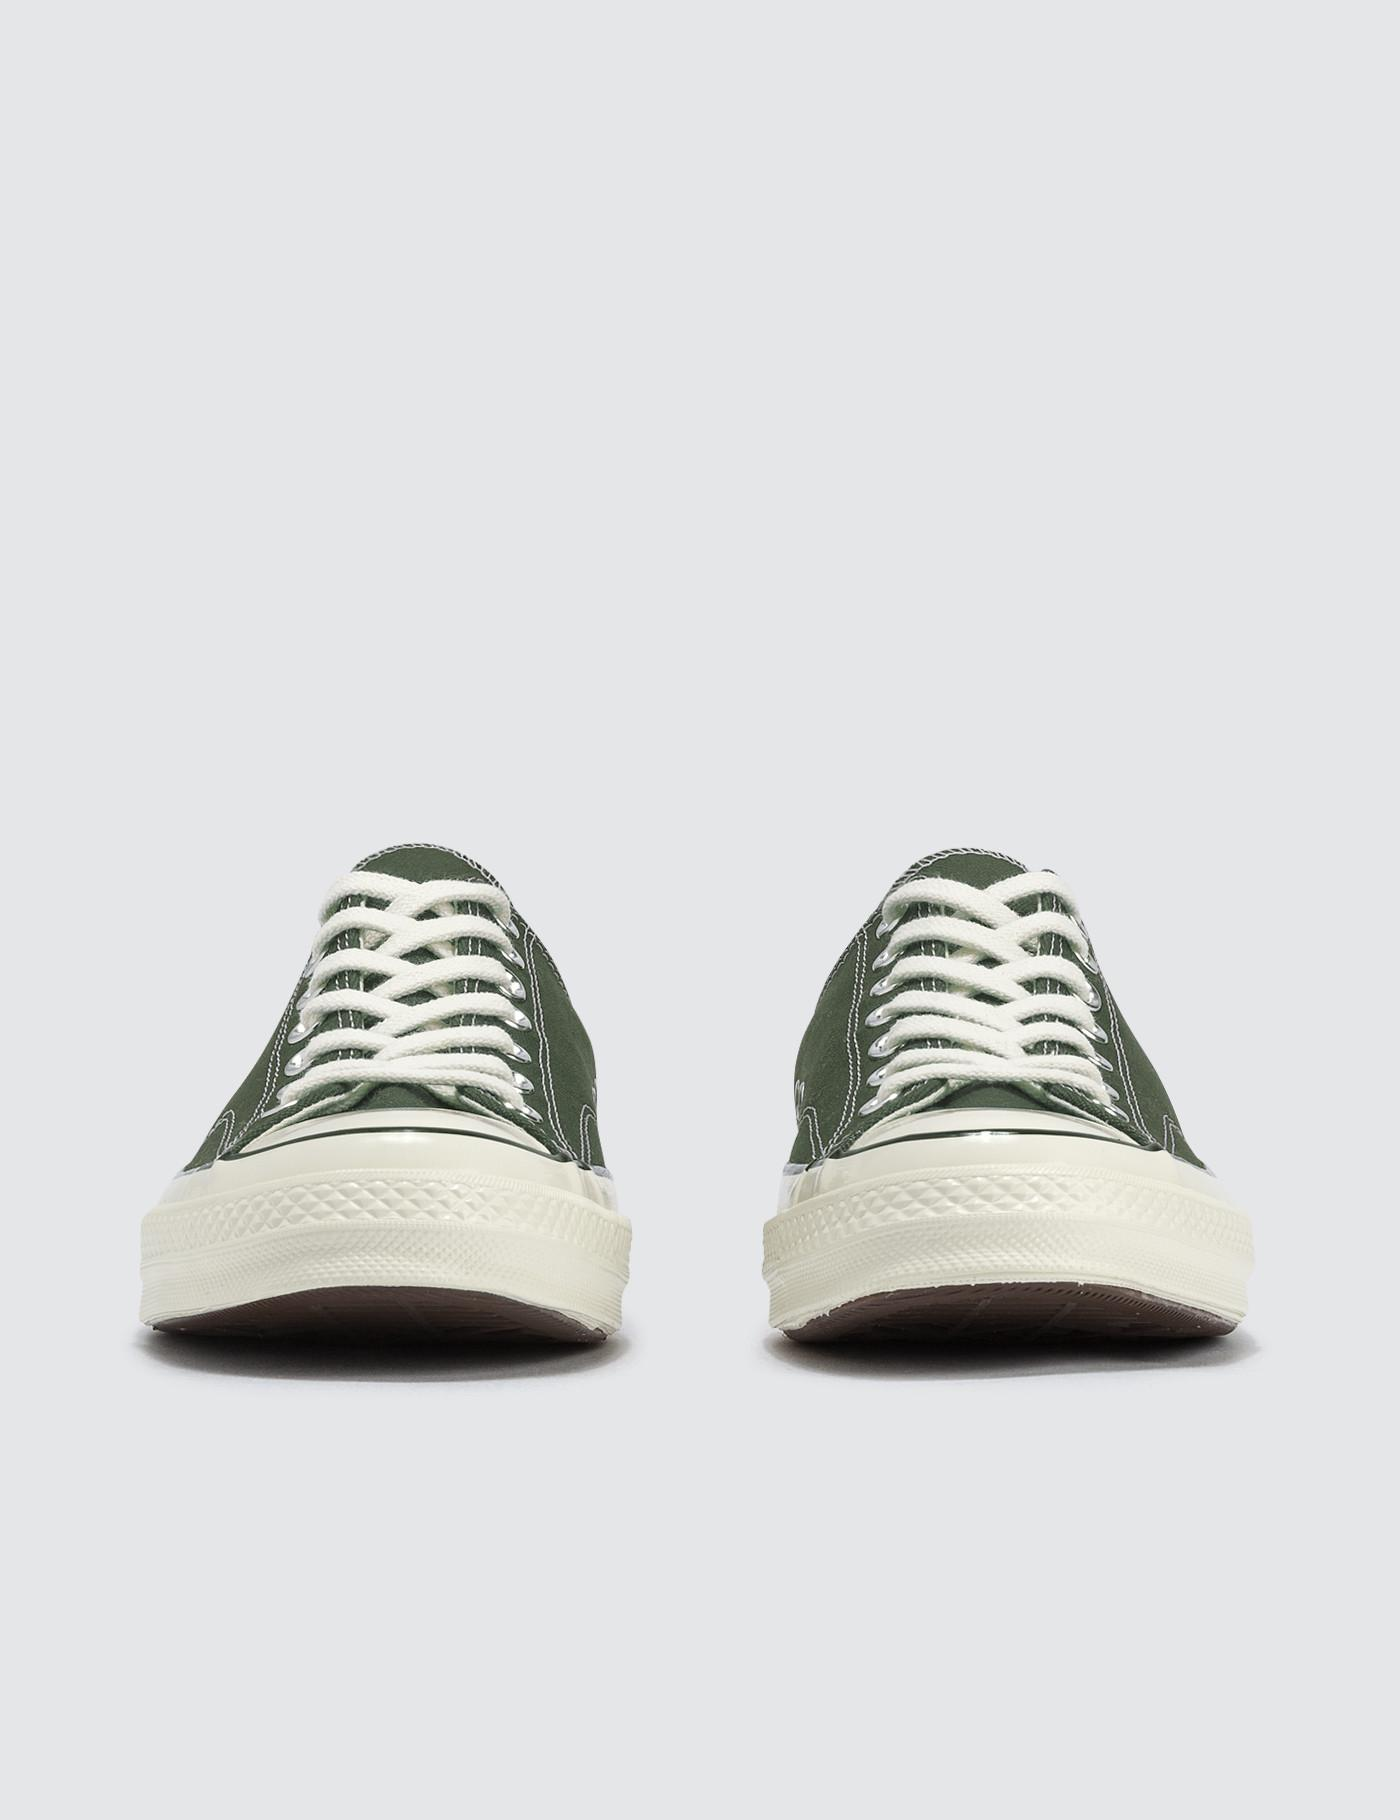 Converse Chuck 70 Ox in Green for Men - Lyst 3a7488a07